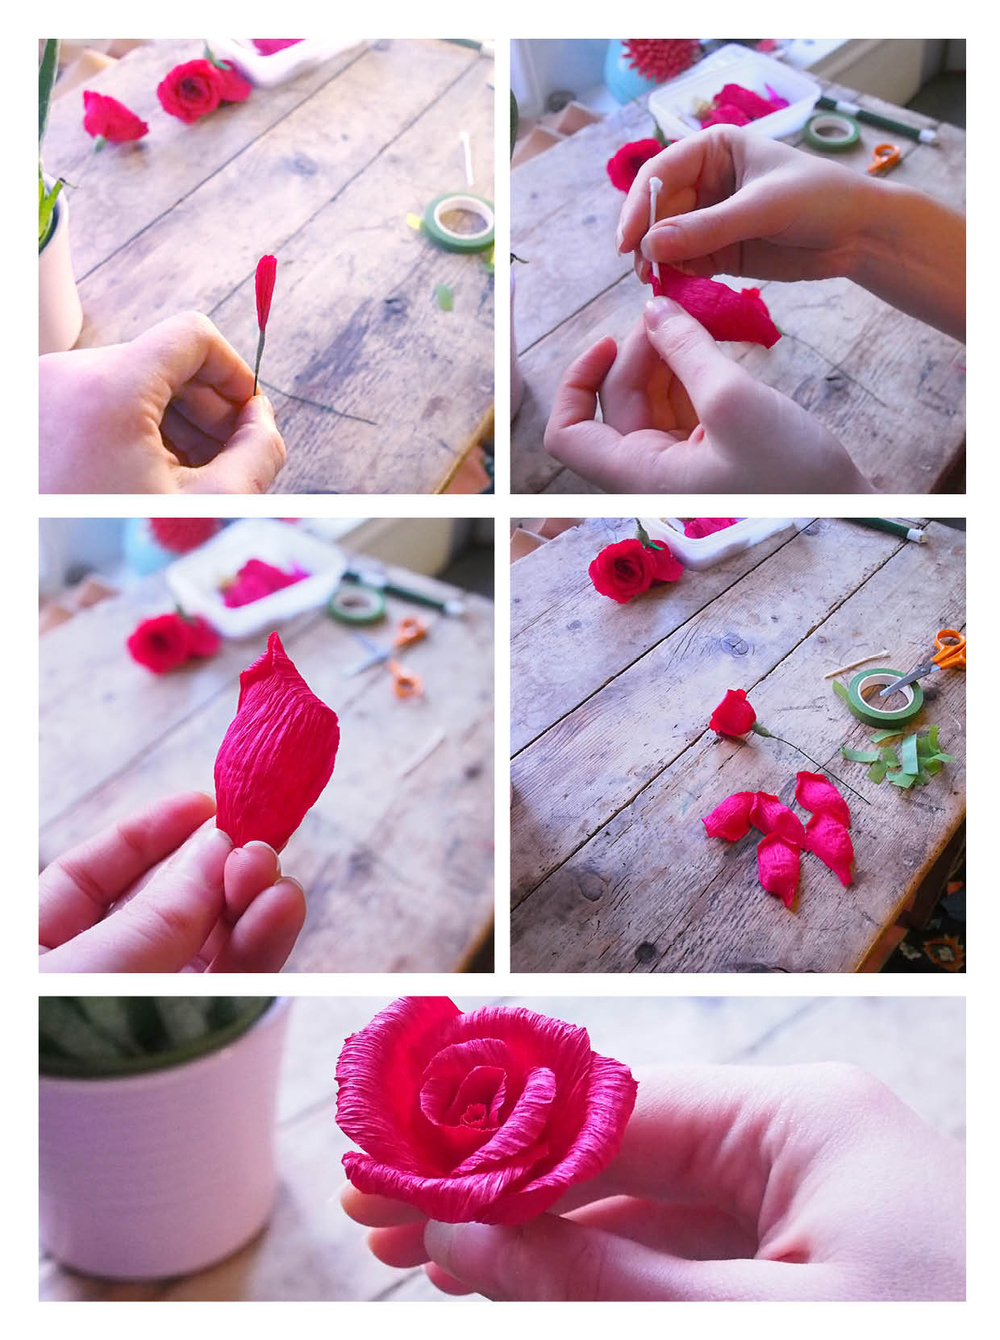 Illustrationcrepe paper holiday wreath tutorial sarah dennissarah using provided templates cut five small five medium and five large petals for each rose from red crepe paper i have found five of each size to be a nice mightylinksfo